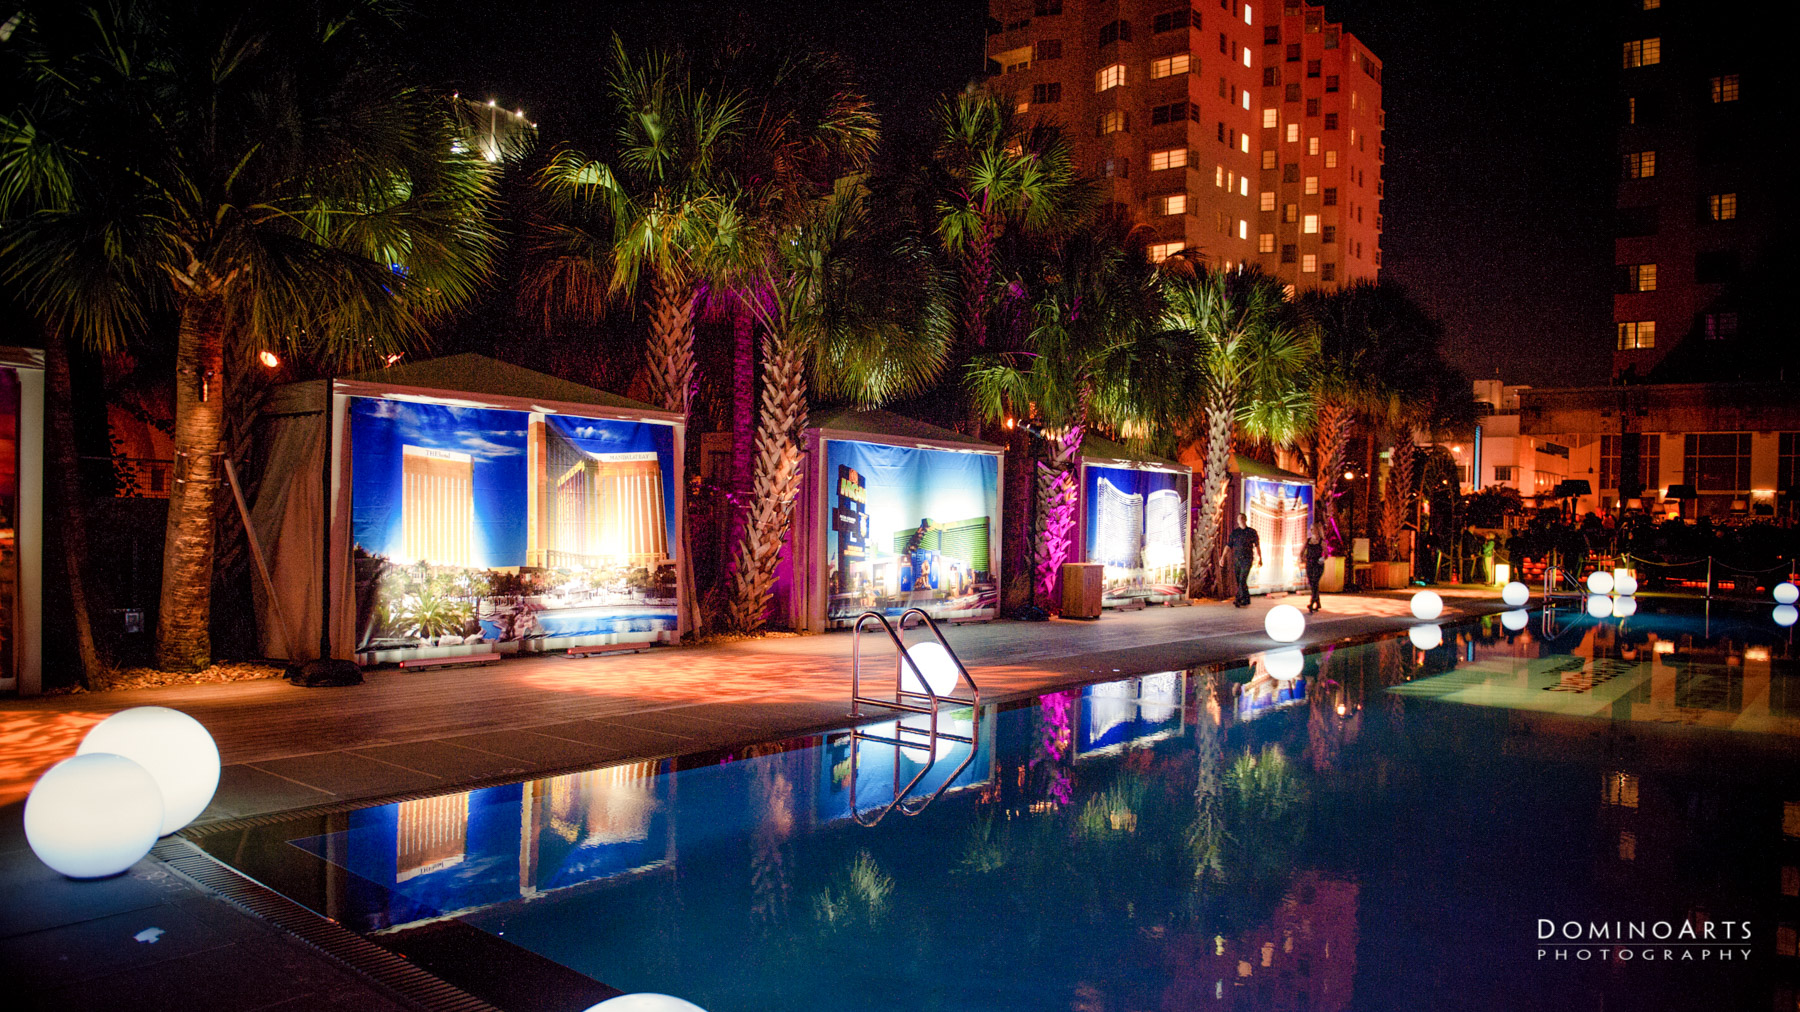 Pool decor for Corporate Event Photography of MGM Resorts International at SLS South Beach, Miami